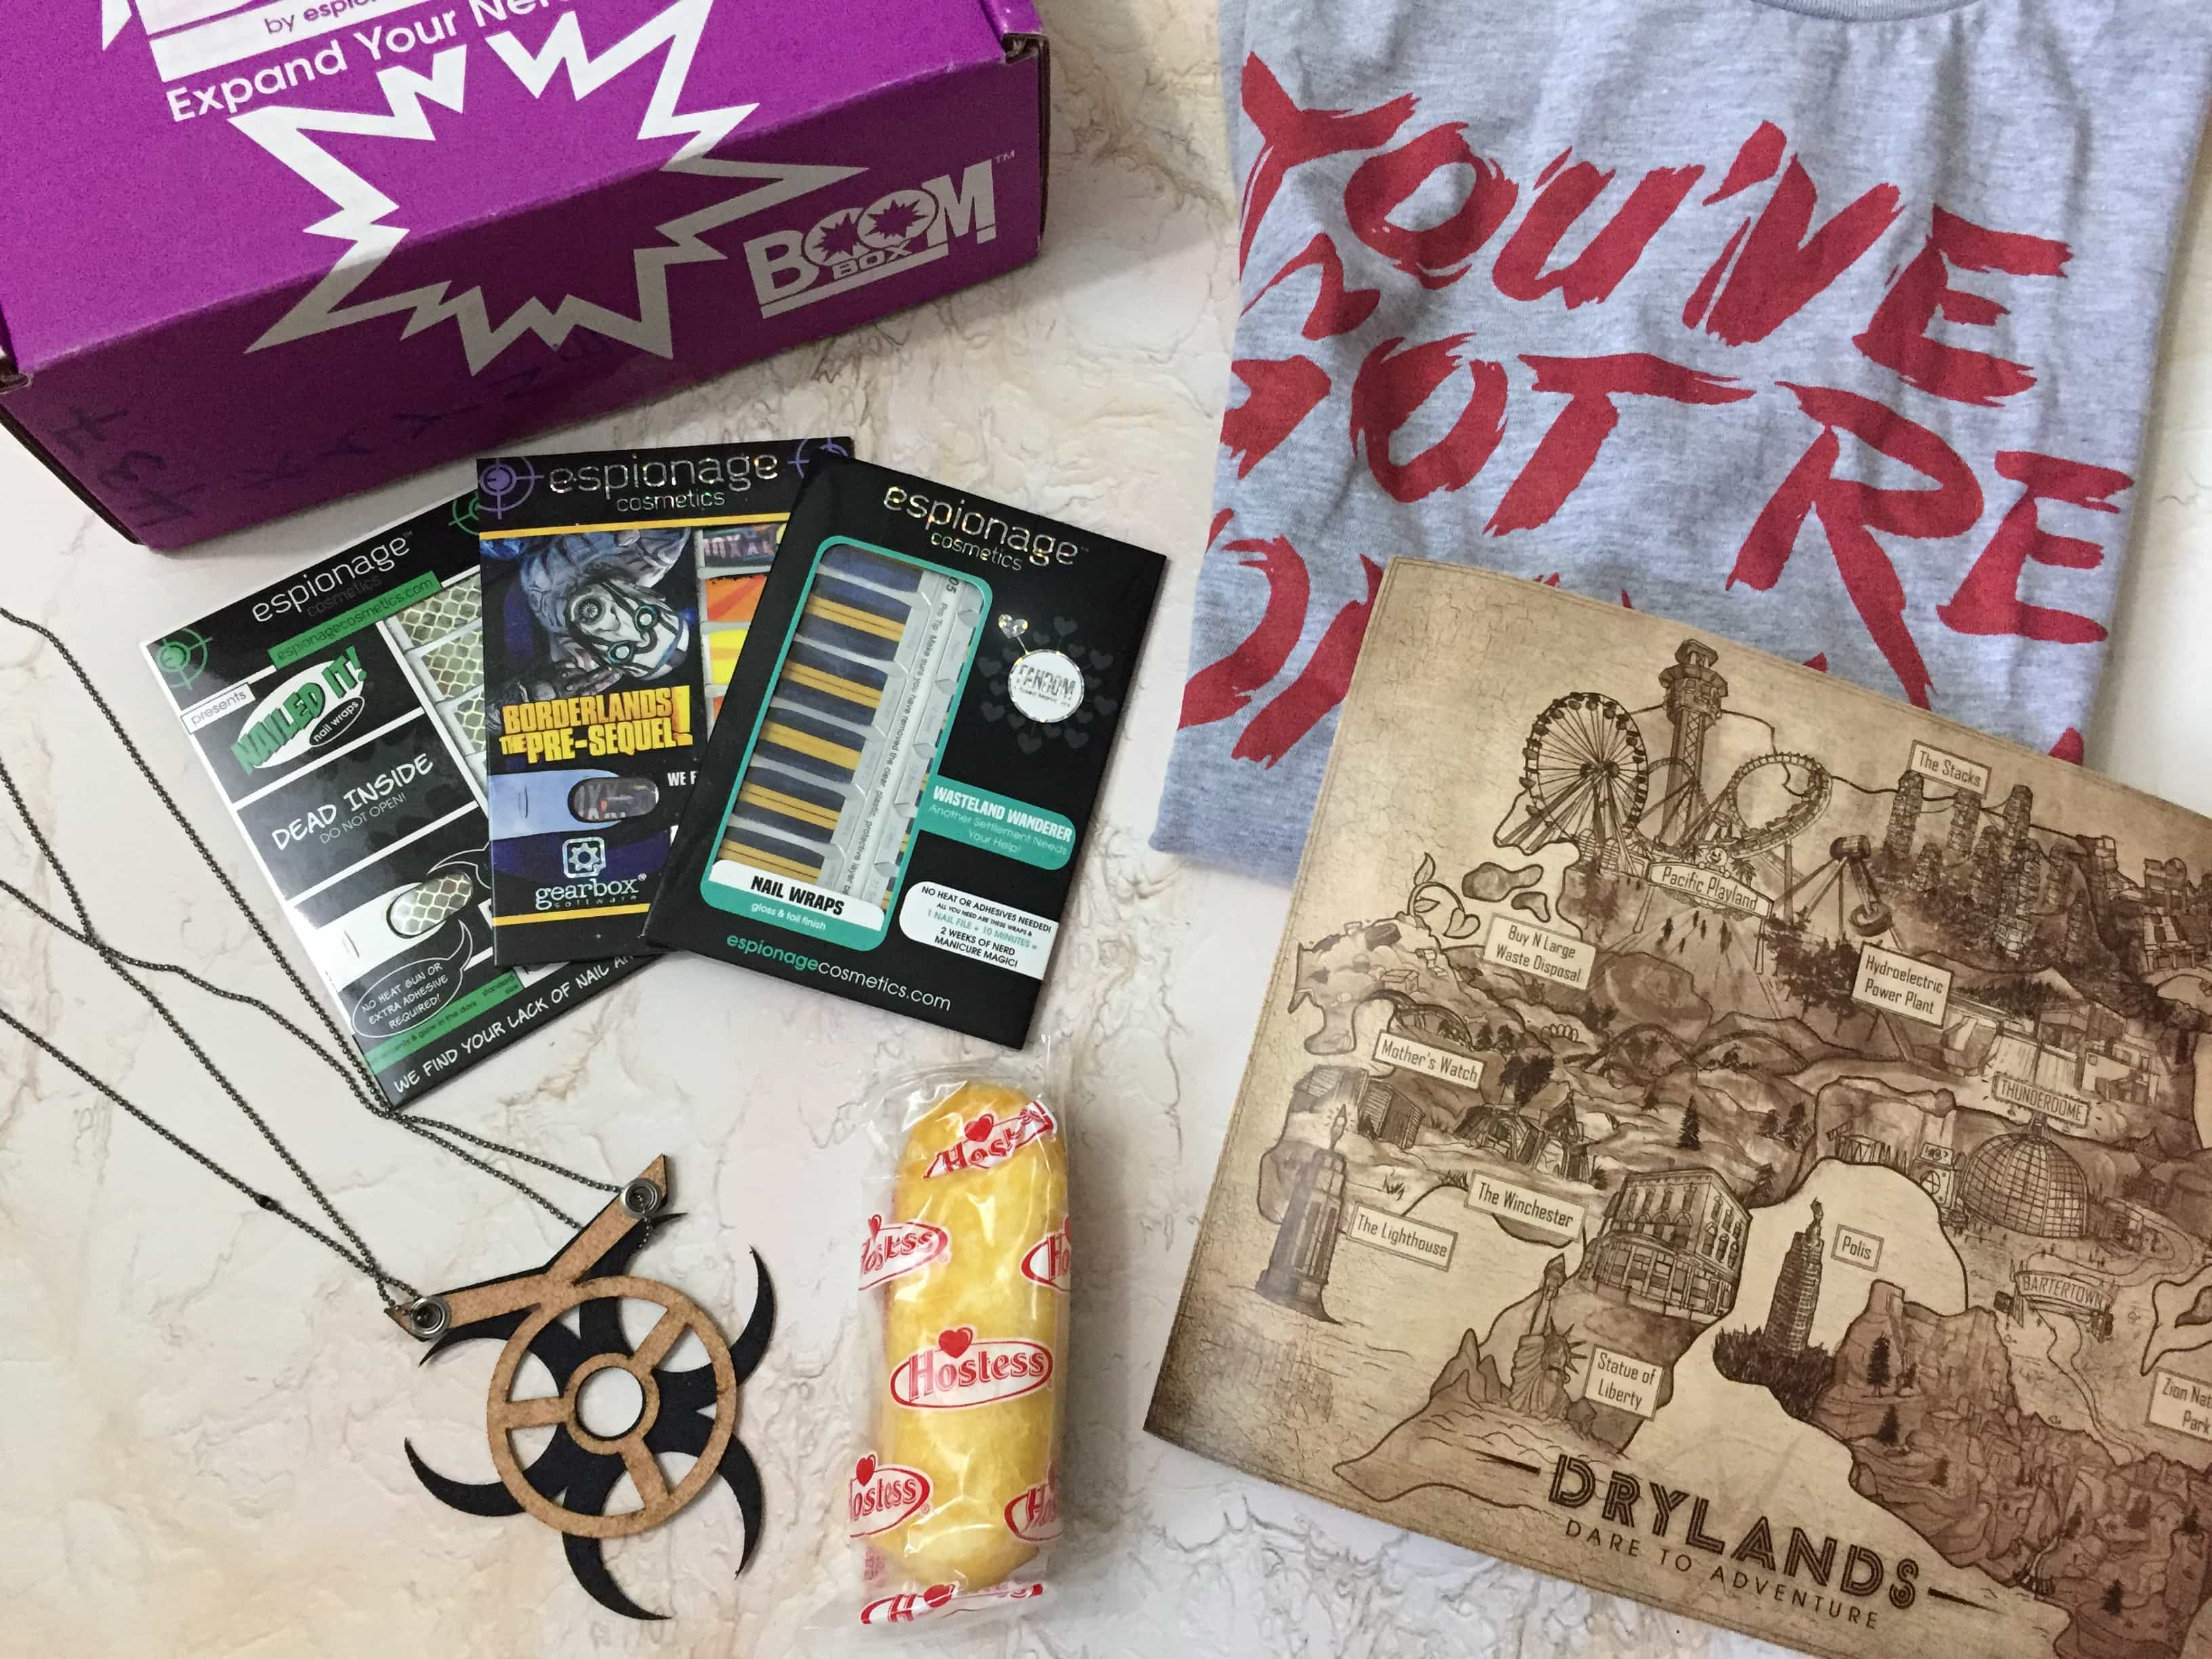 EC BOOM! Box May 2017 Subscription Box Review & Coupon